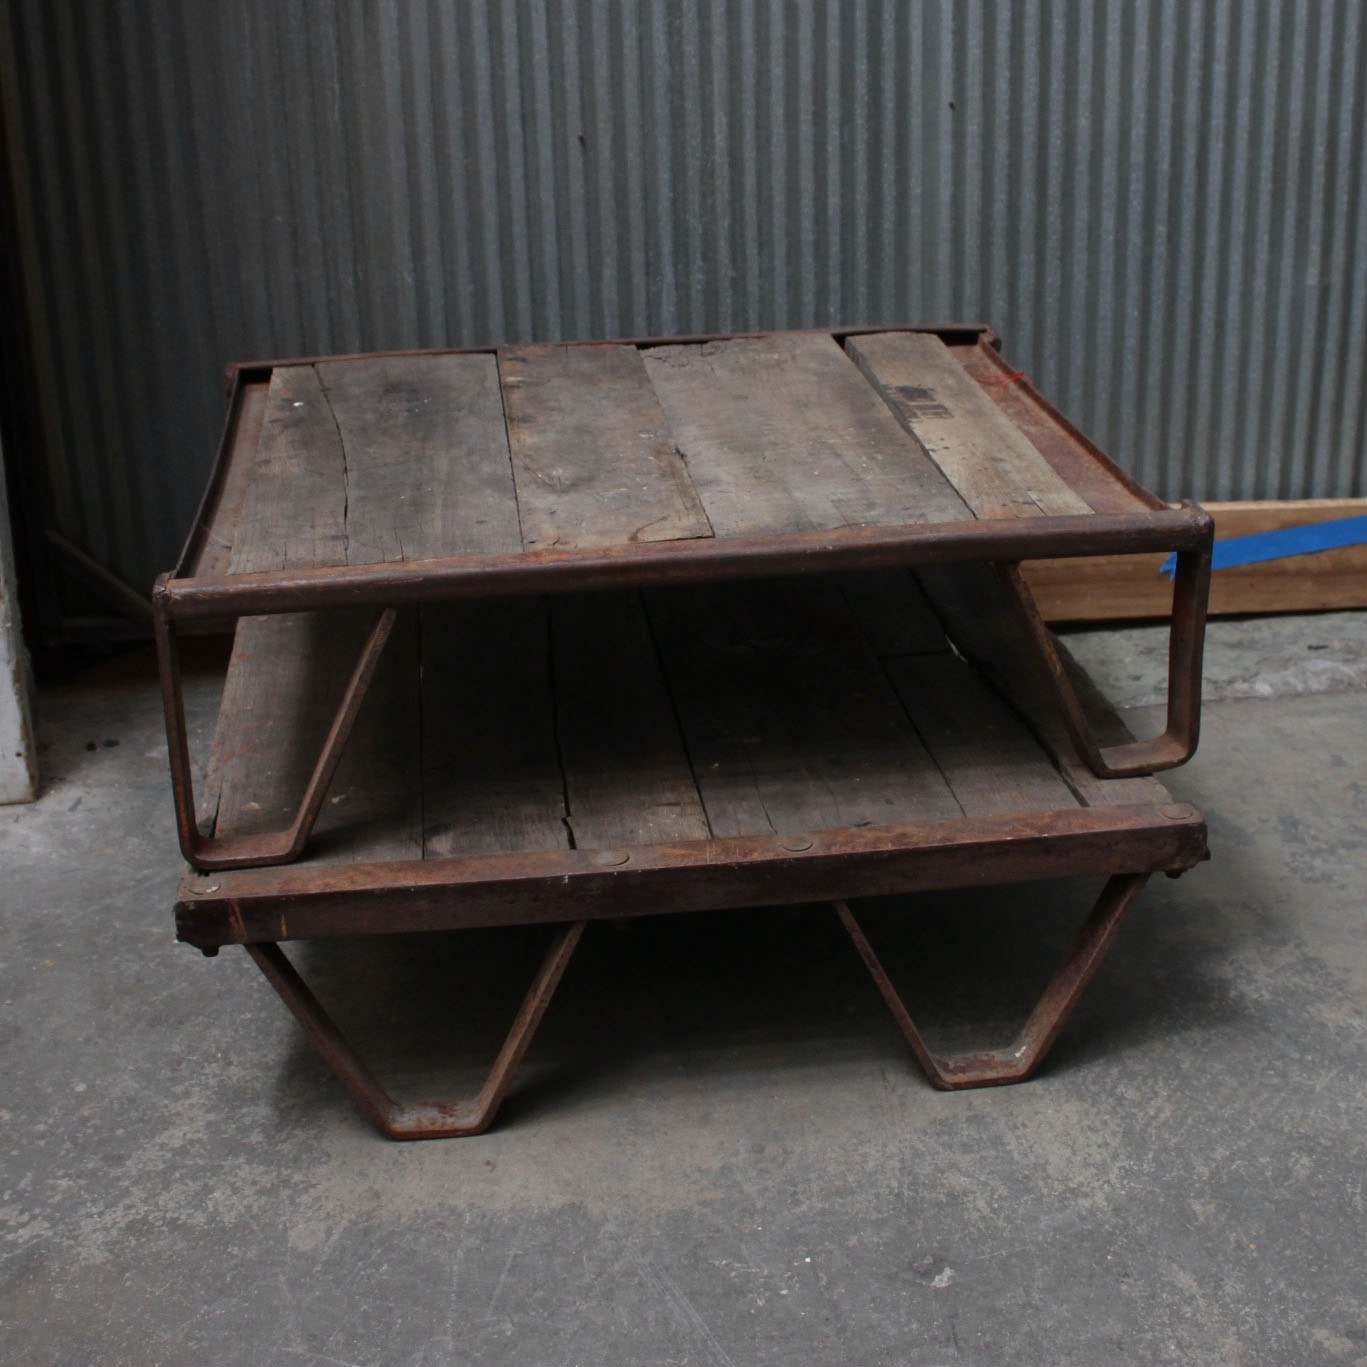 Vintage Industrial Style Coffee Tables ...